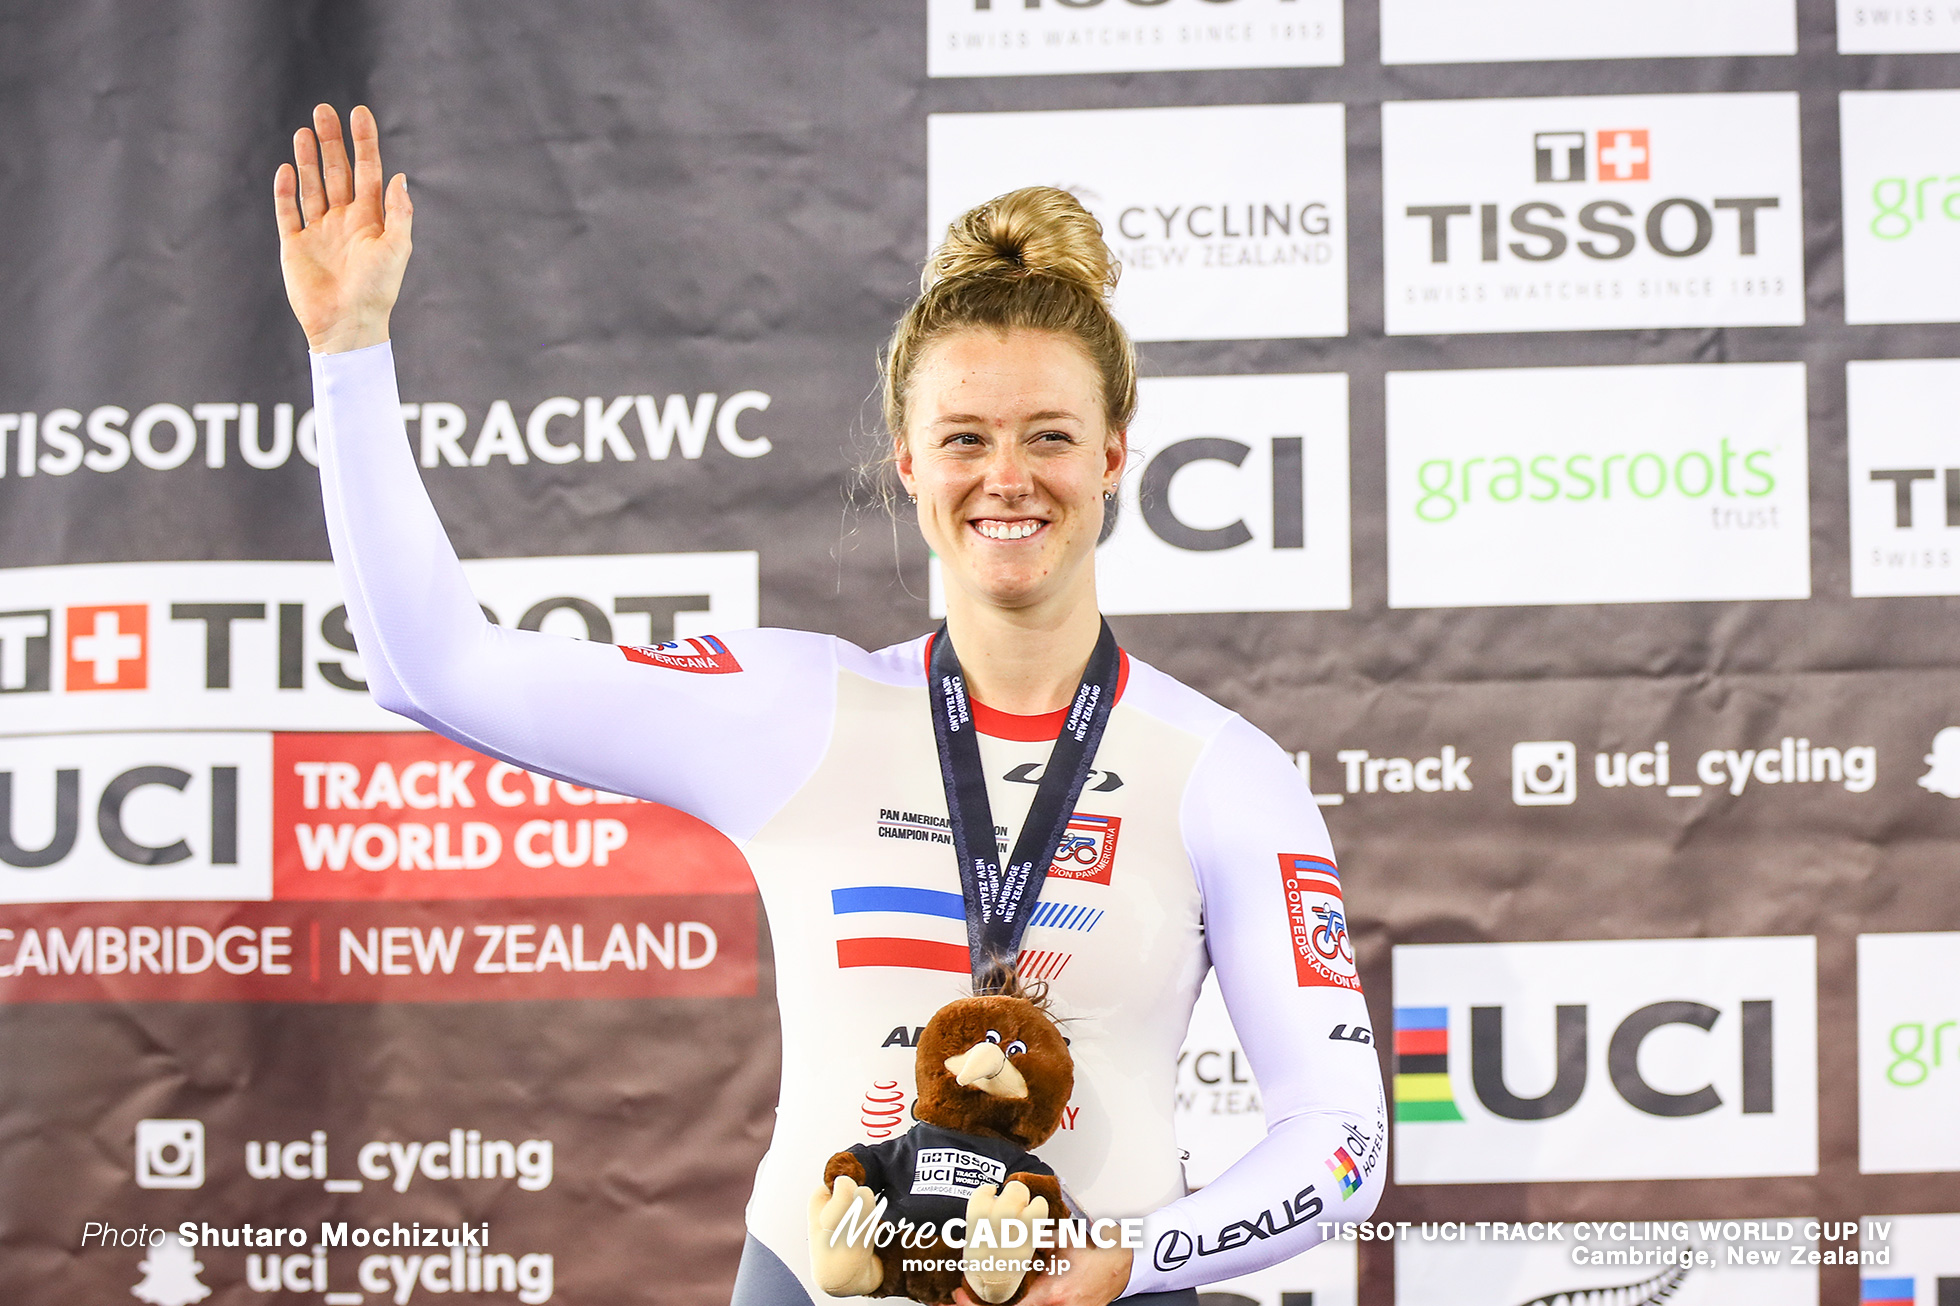 Final / Women's Sprint / TISSOT UCI TRACK CYCLING WORLD CUP IV, Cambridge, New Zealand, Kelsey MITCHELL ケルシー・ミシェル